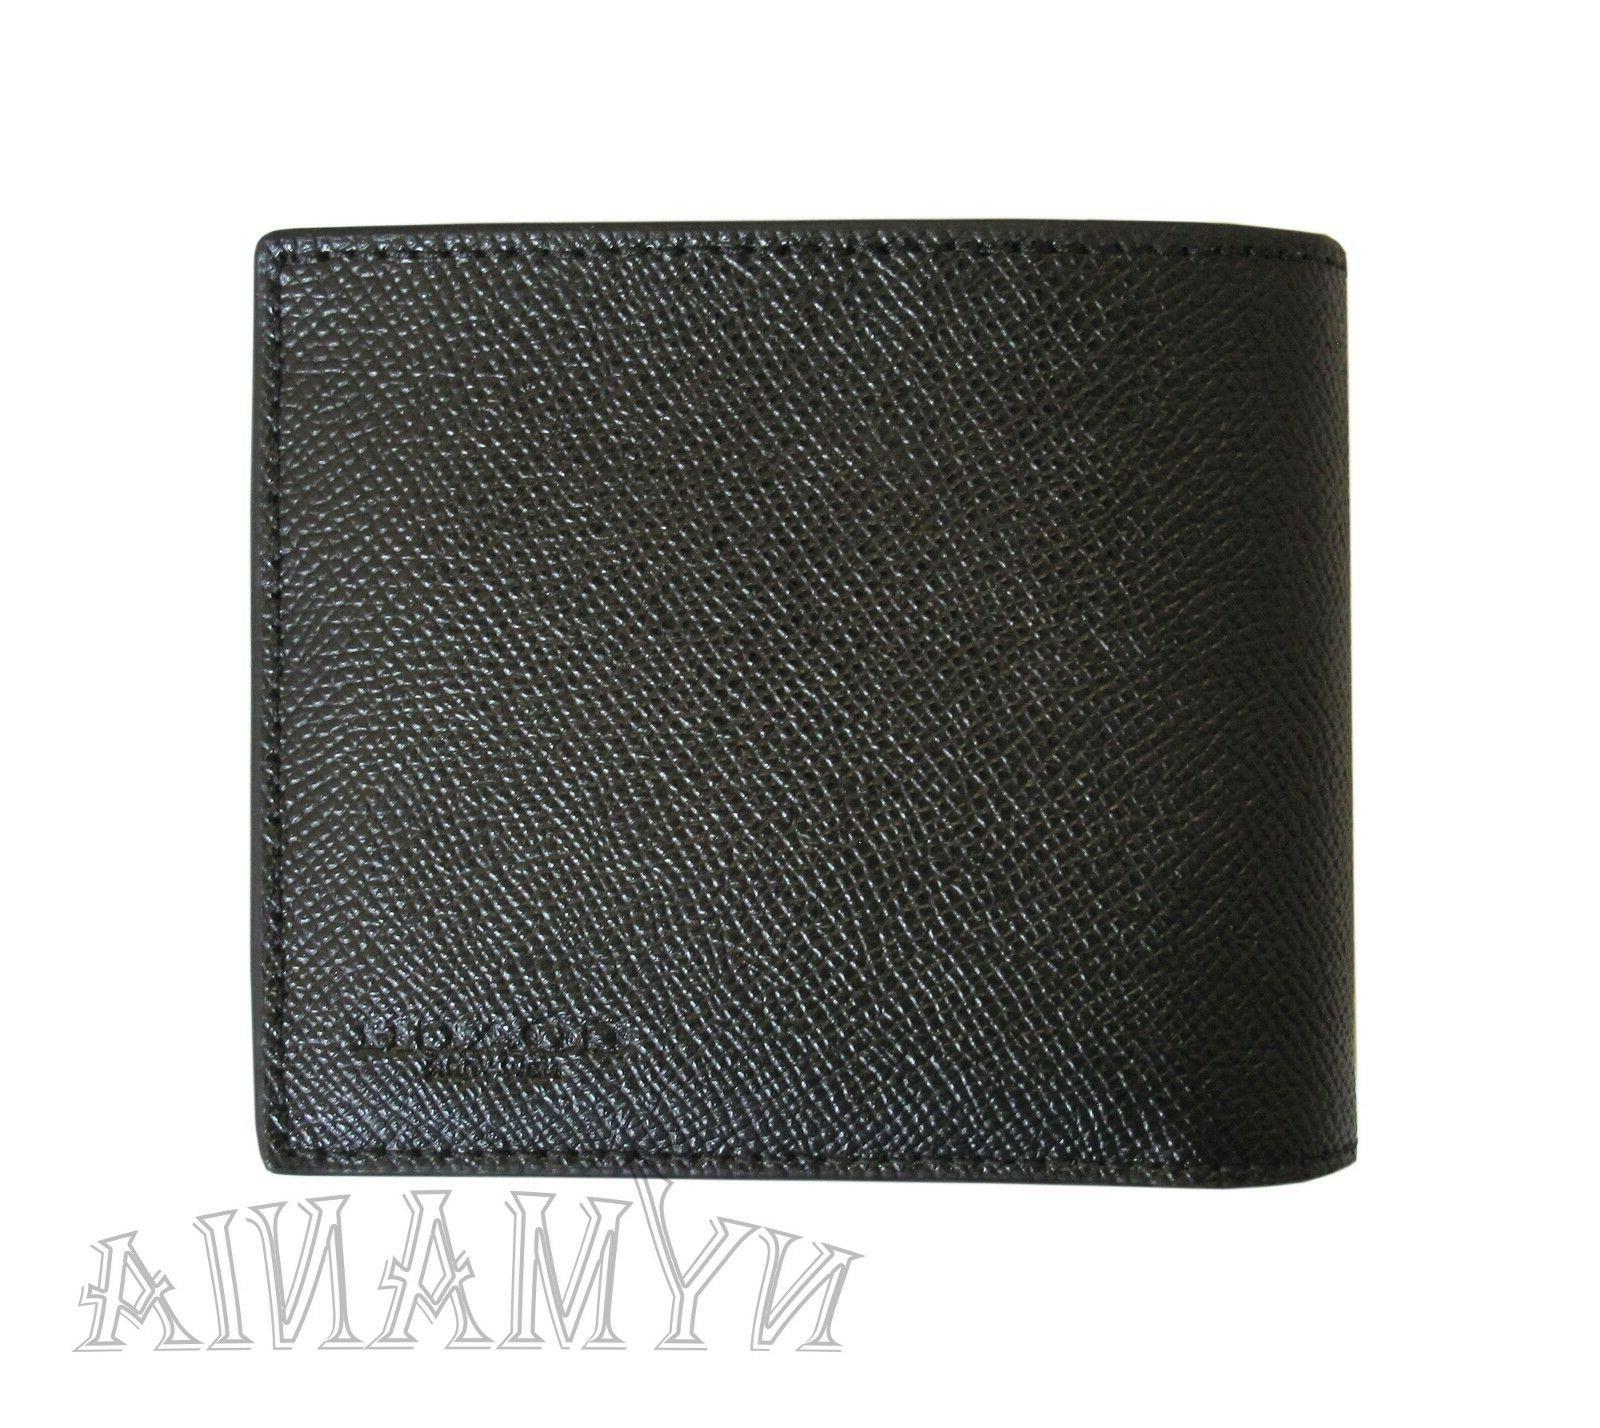 New F59112 3-IN-1 ID Leather BOX